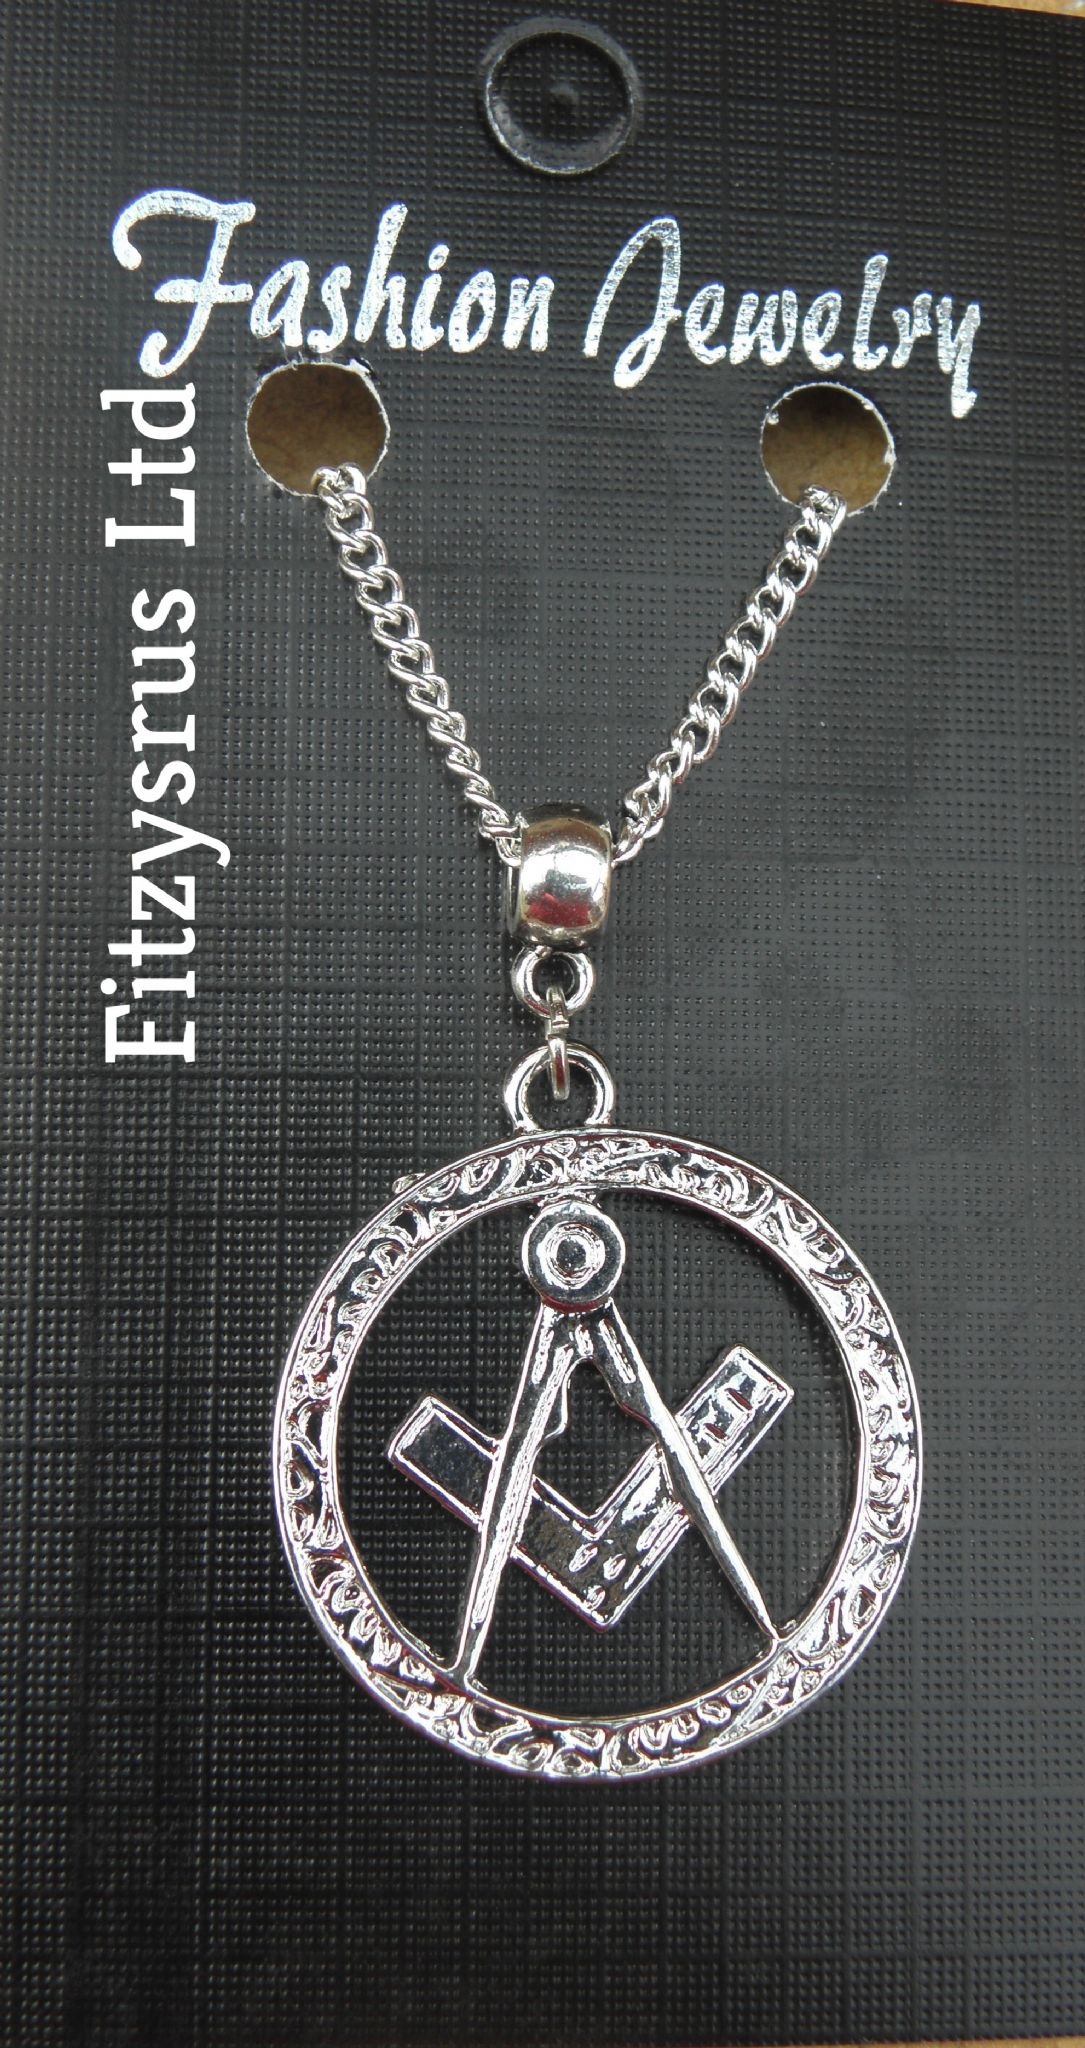 "18 or 24"" Necklace & Masonic Square & Compass Charm Freemason Mason Freemasonary"